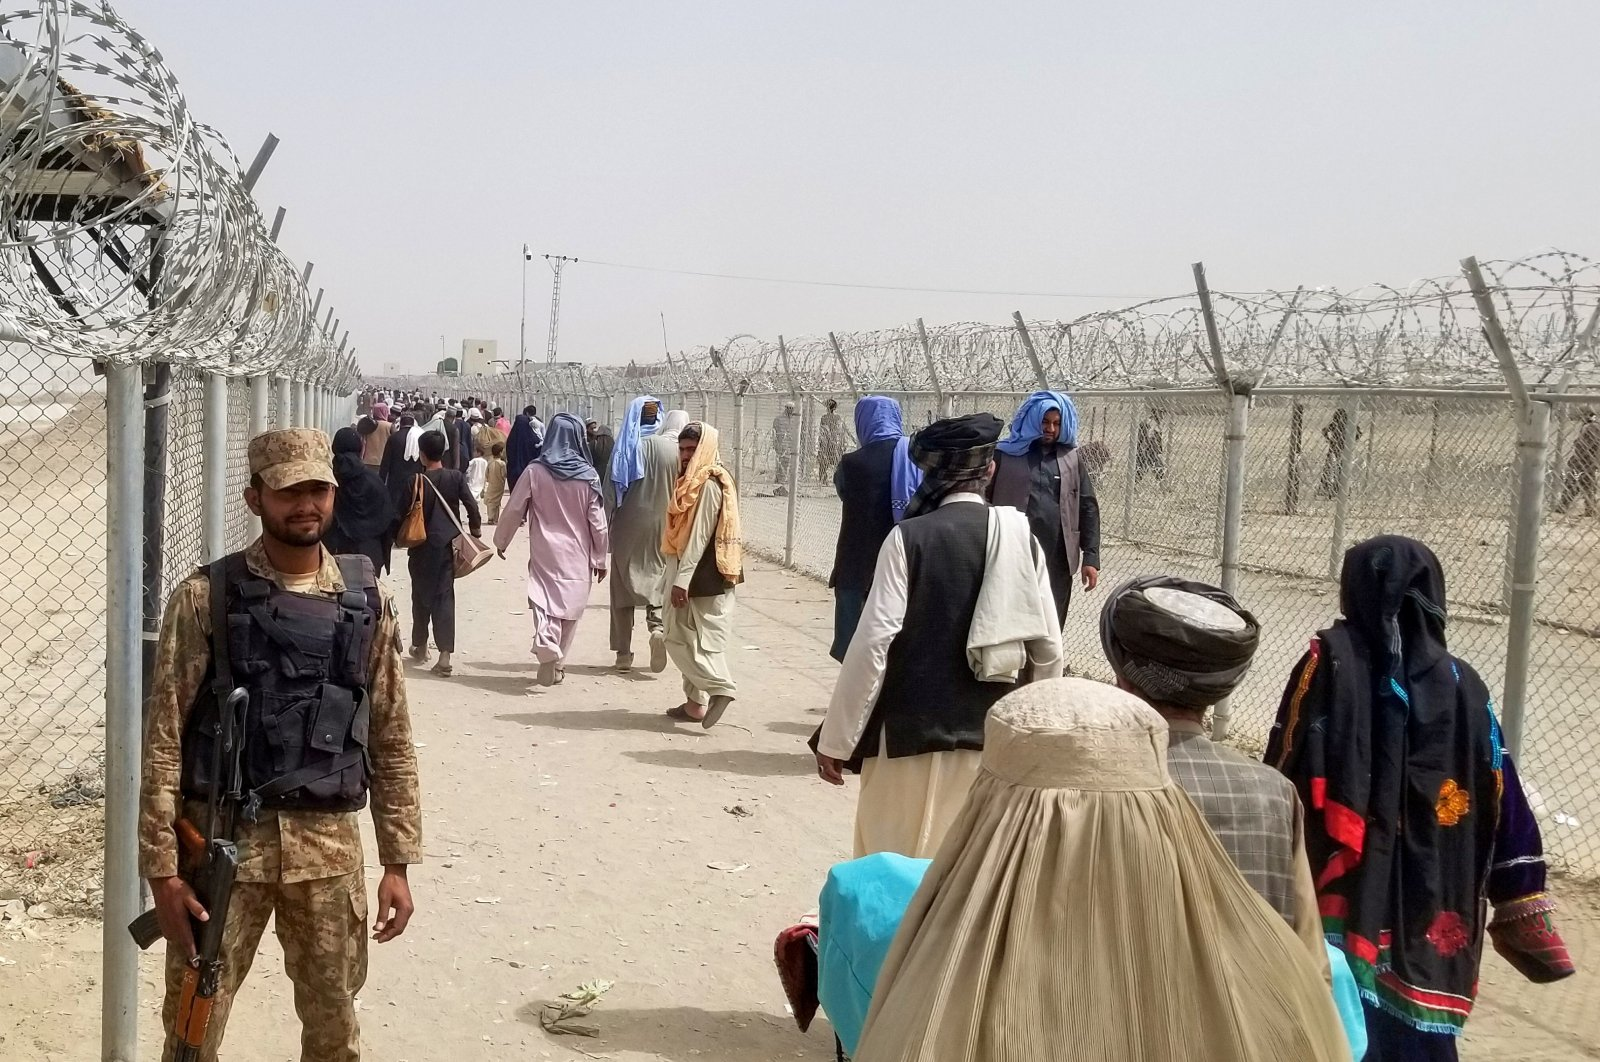 A soldier from the Pakistan Army stands guard as people arriving from Afghanistan make their way at the Friendship Gate crossing point in the Pakistan-Afghanistan border town of Chaman, Pakistan, Aug. 16, 2021. (REUTERS Photo)